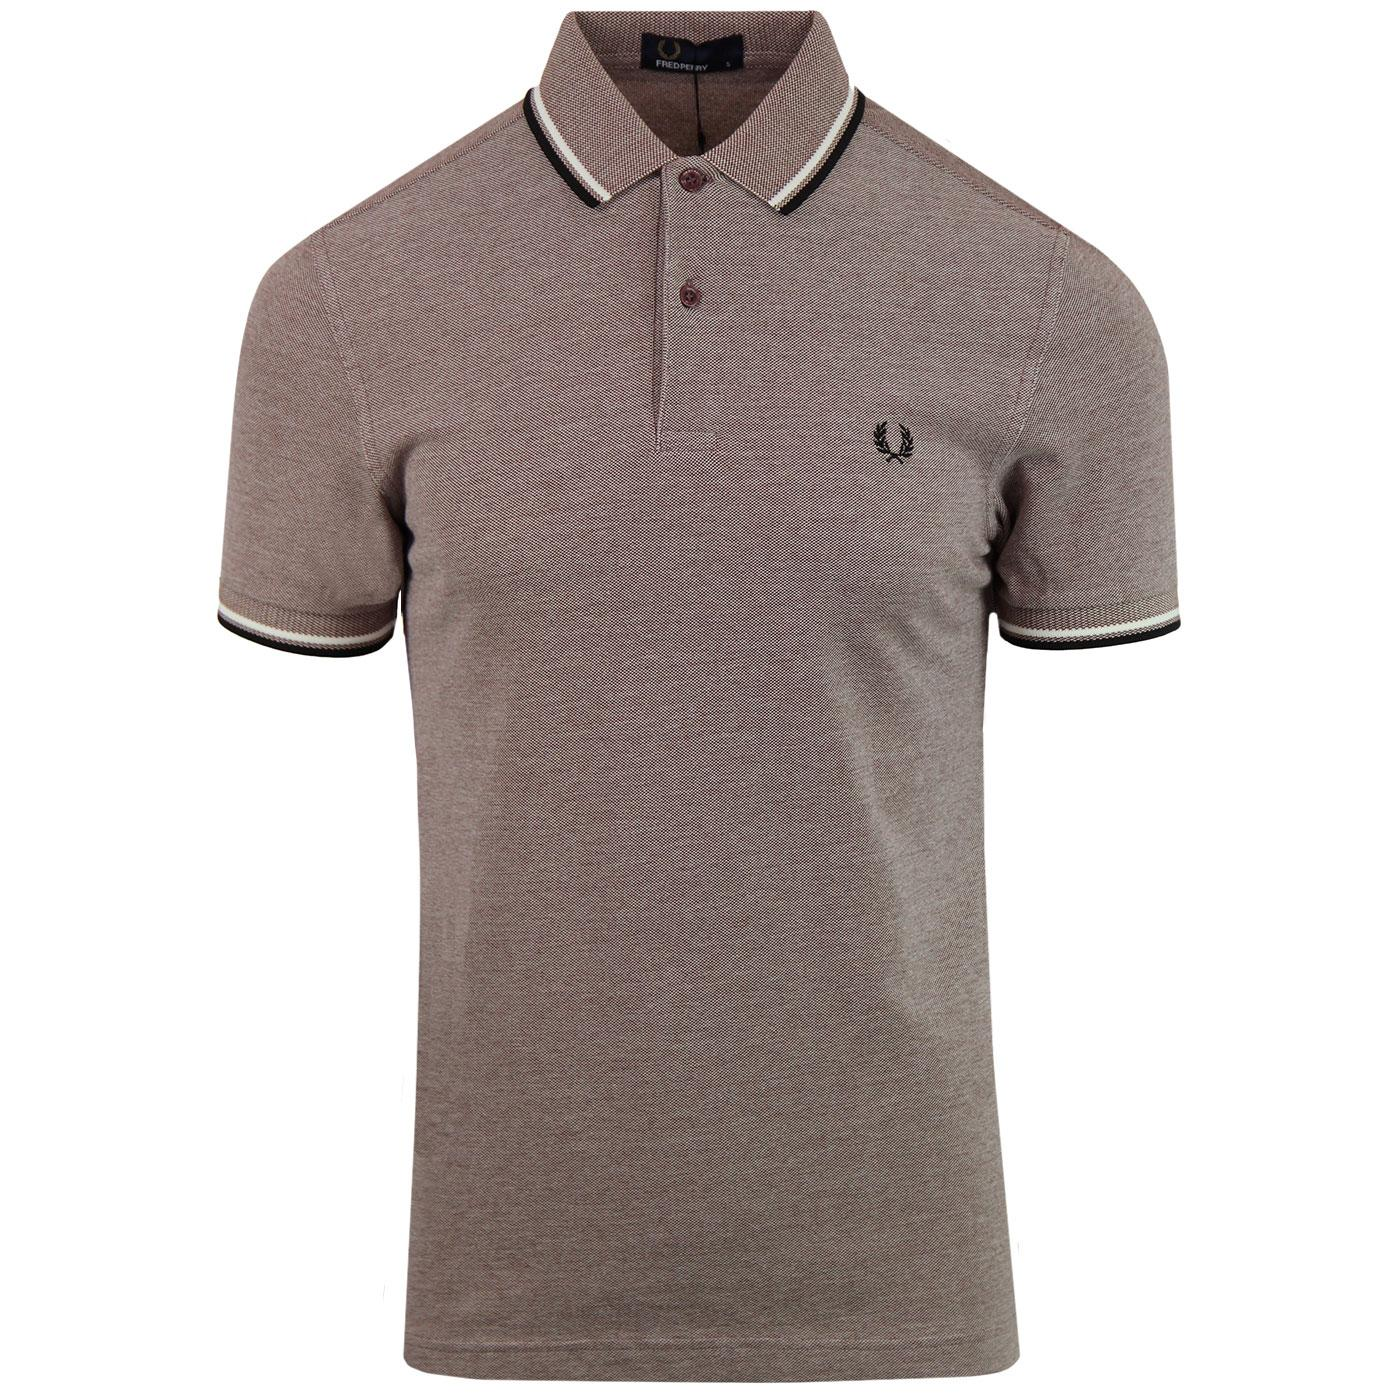 FRED PERRY M3600 Mod Twin Tipped Polo Shirt (SRO)